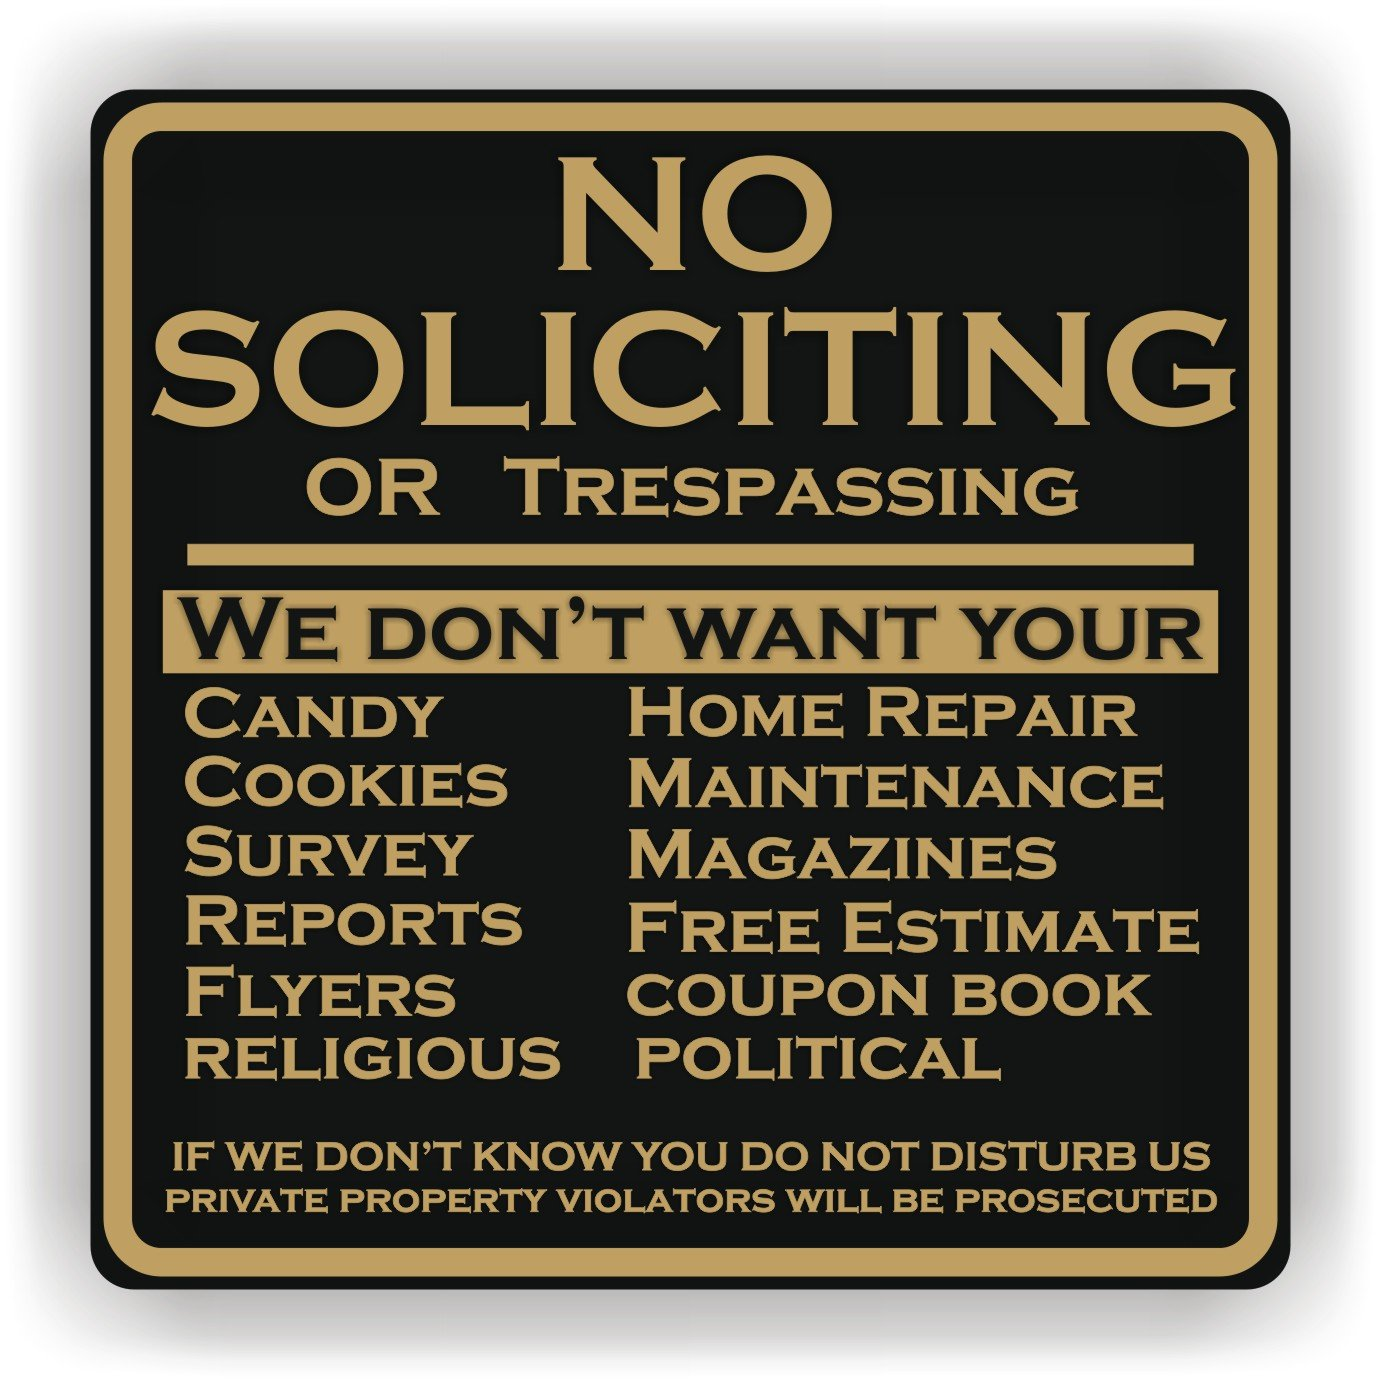 How Effective Are Residential No Soliciting Signs Anandtech Forums Technology Hardware Software And Deals